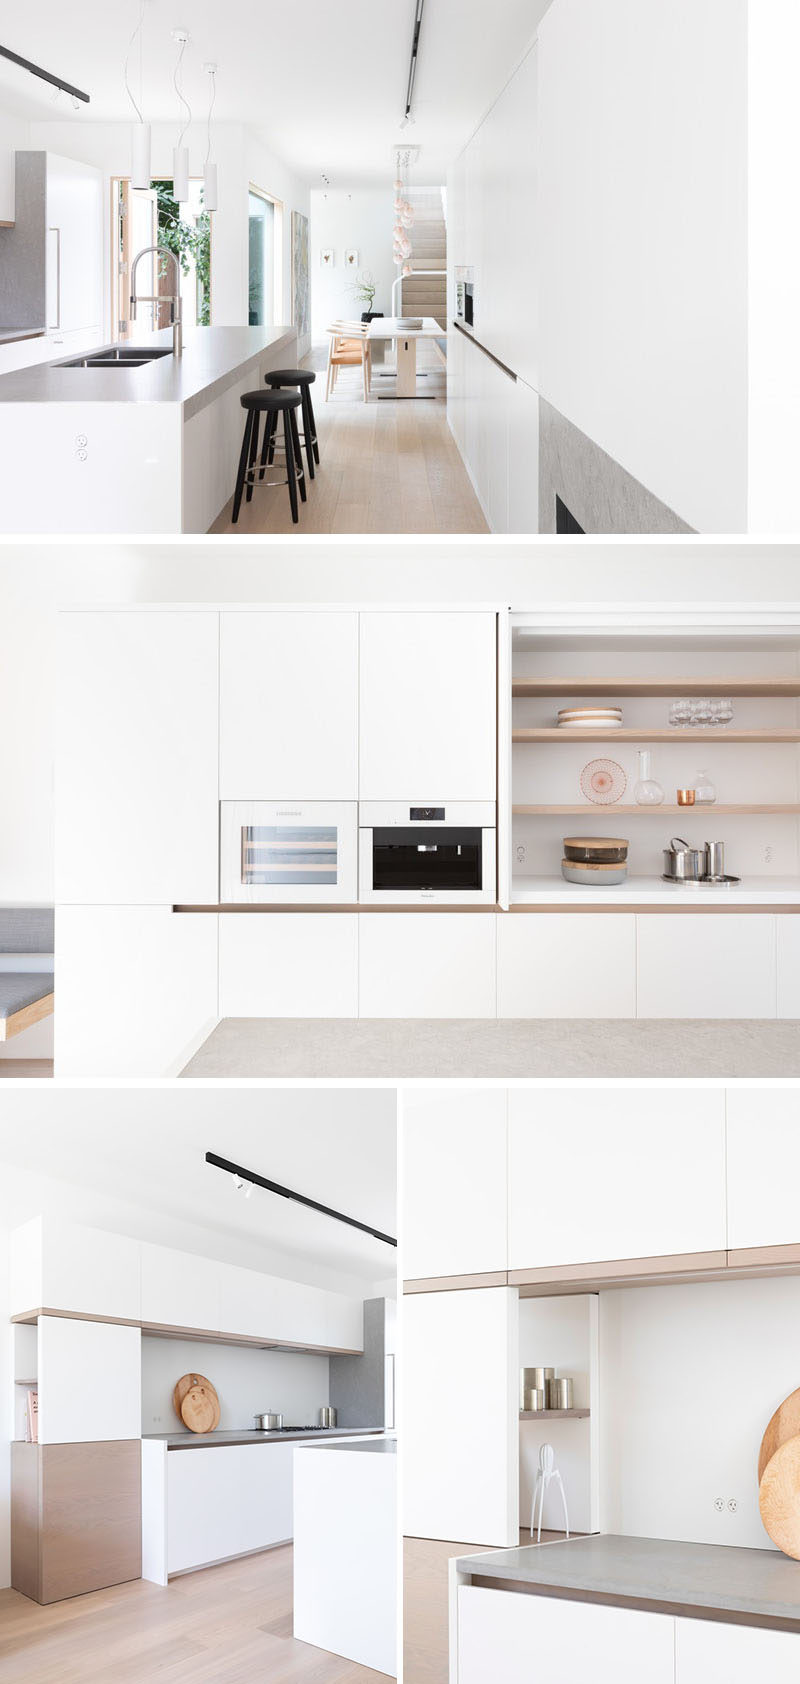 This modern kitchen has white lacquered cabinetry with oak finger pulls, Corian Quartz counters and gables, as well as backsplash and kicks. There's also integrated wine and coffee appliances in white glass to match, and open shelving behind doors that tuck away. #WhiteKitchen #KitchenDesign #ModernKitchen